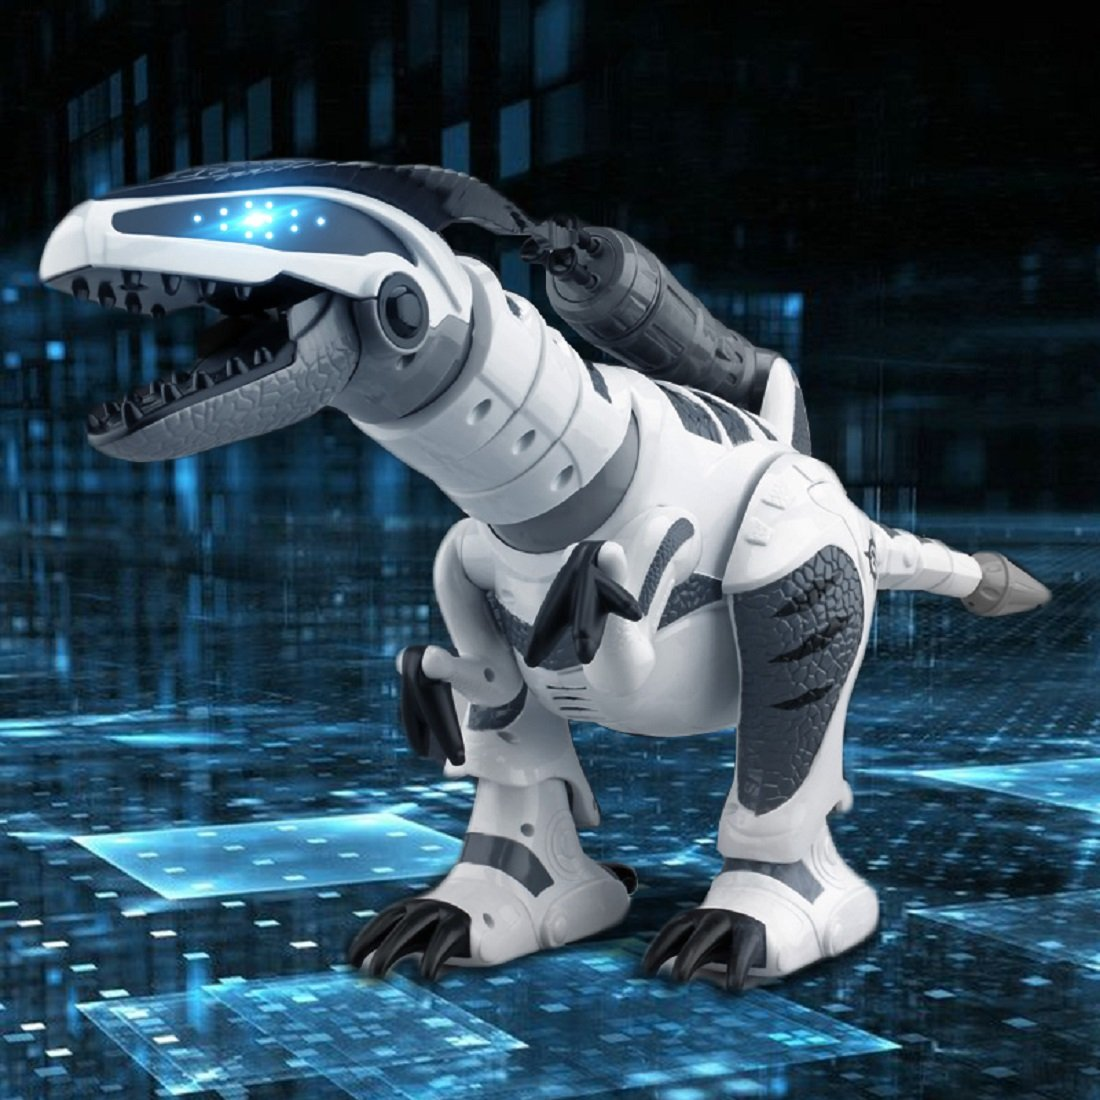 Yeezee Rmote Control Dinasour Toys,Wireless Large Shooting Rex, Walking, Dancing, Figure Gesture, Progammable,Robot for kids(White)